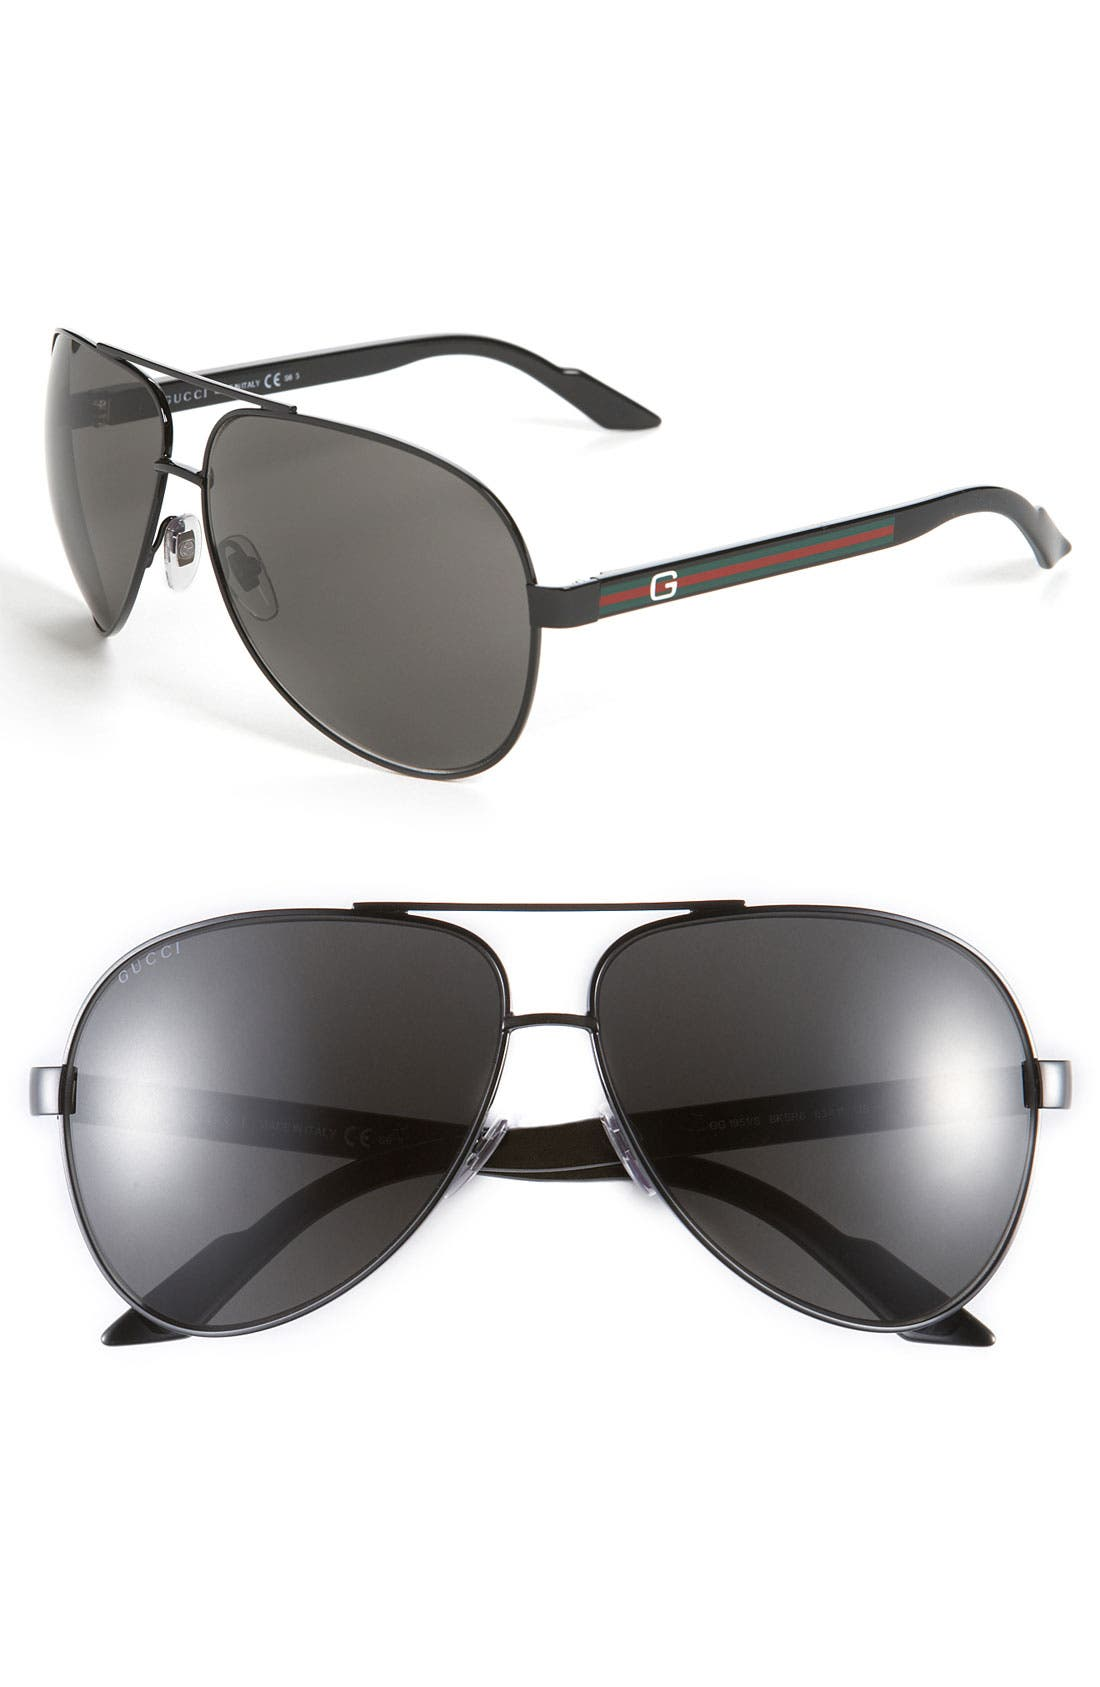 Main Image - Gucci Metal 63mm Aviator Sunglasses